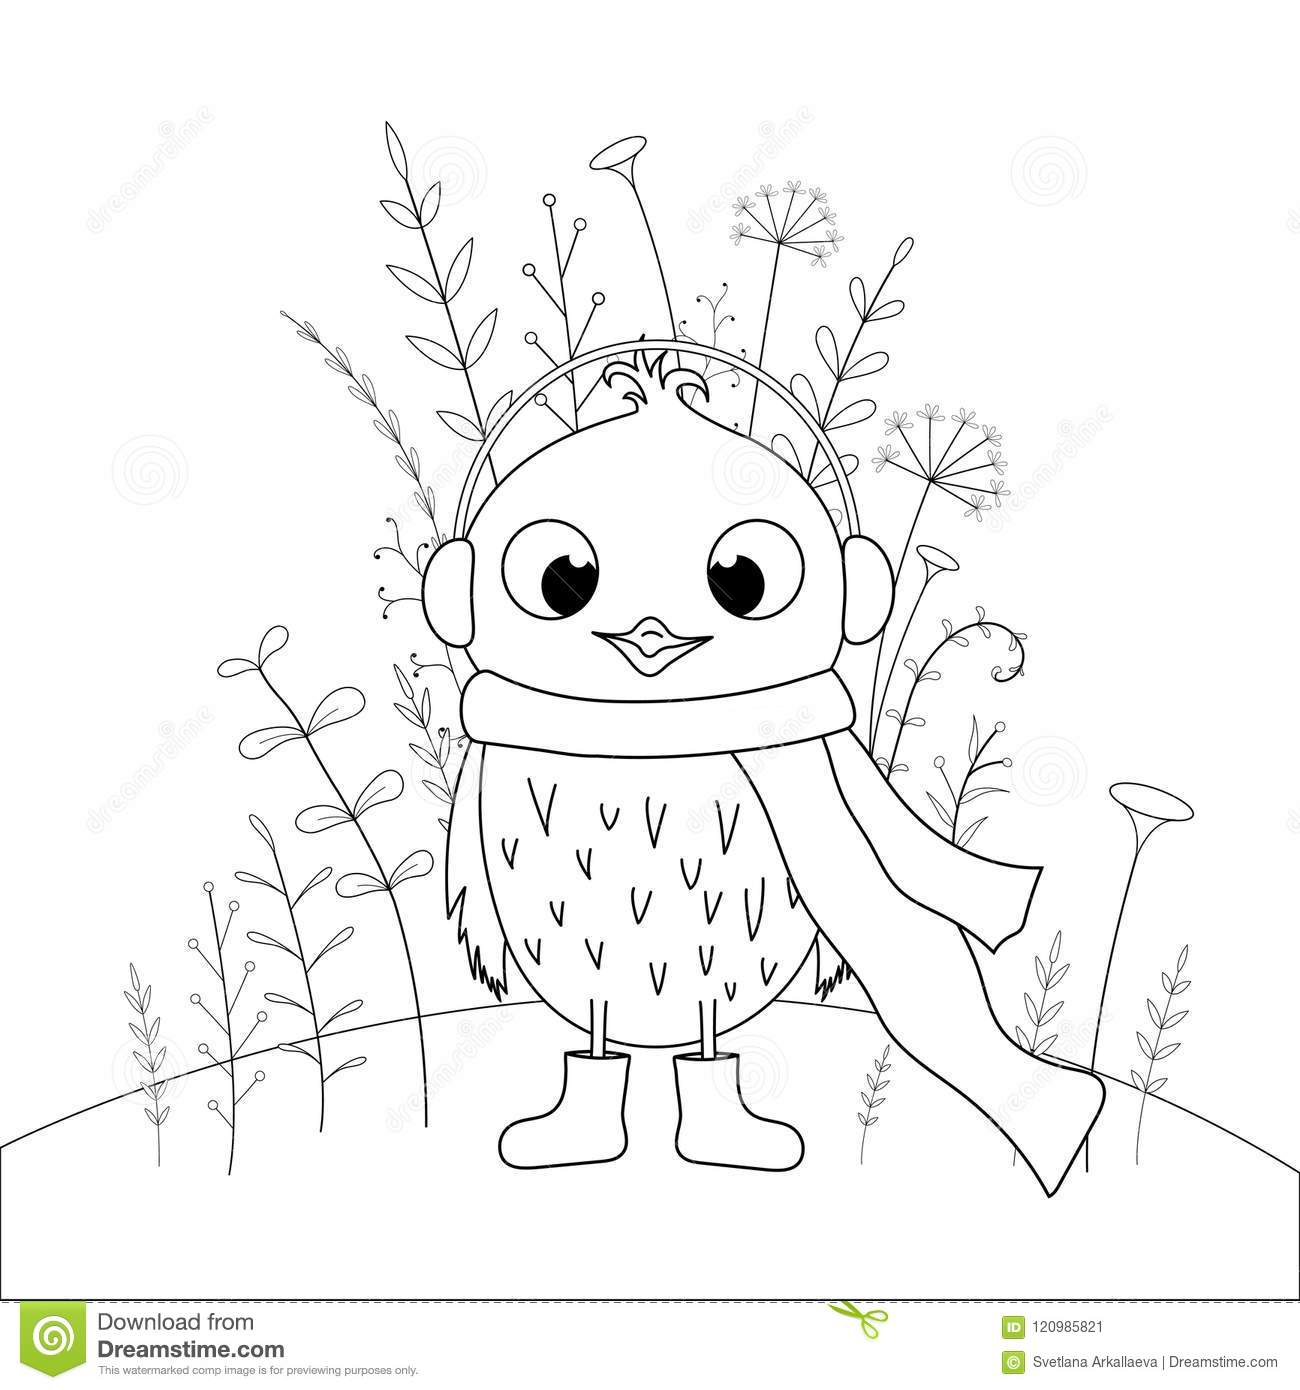 Children S Coloring Book With Cartoon Animals. Educational